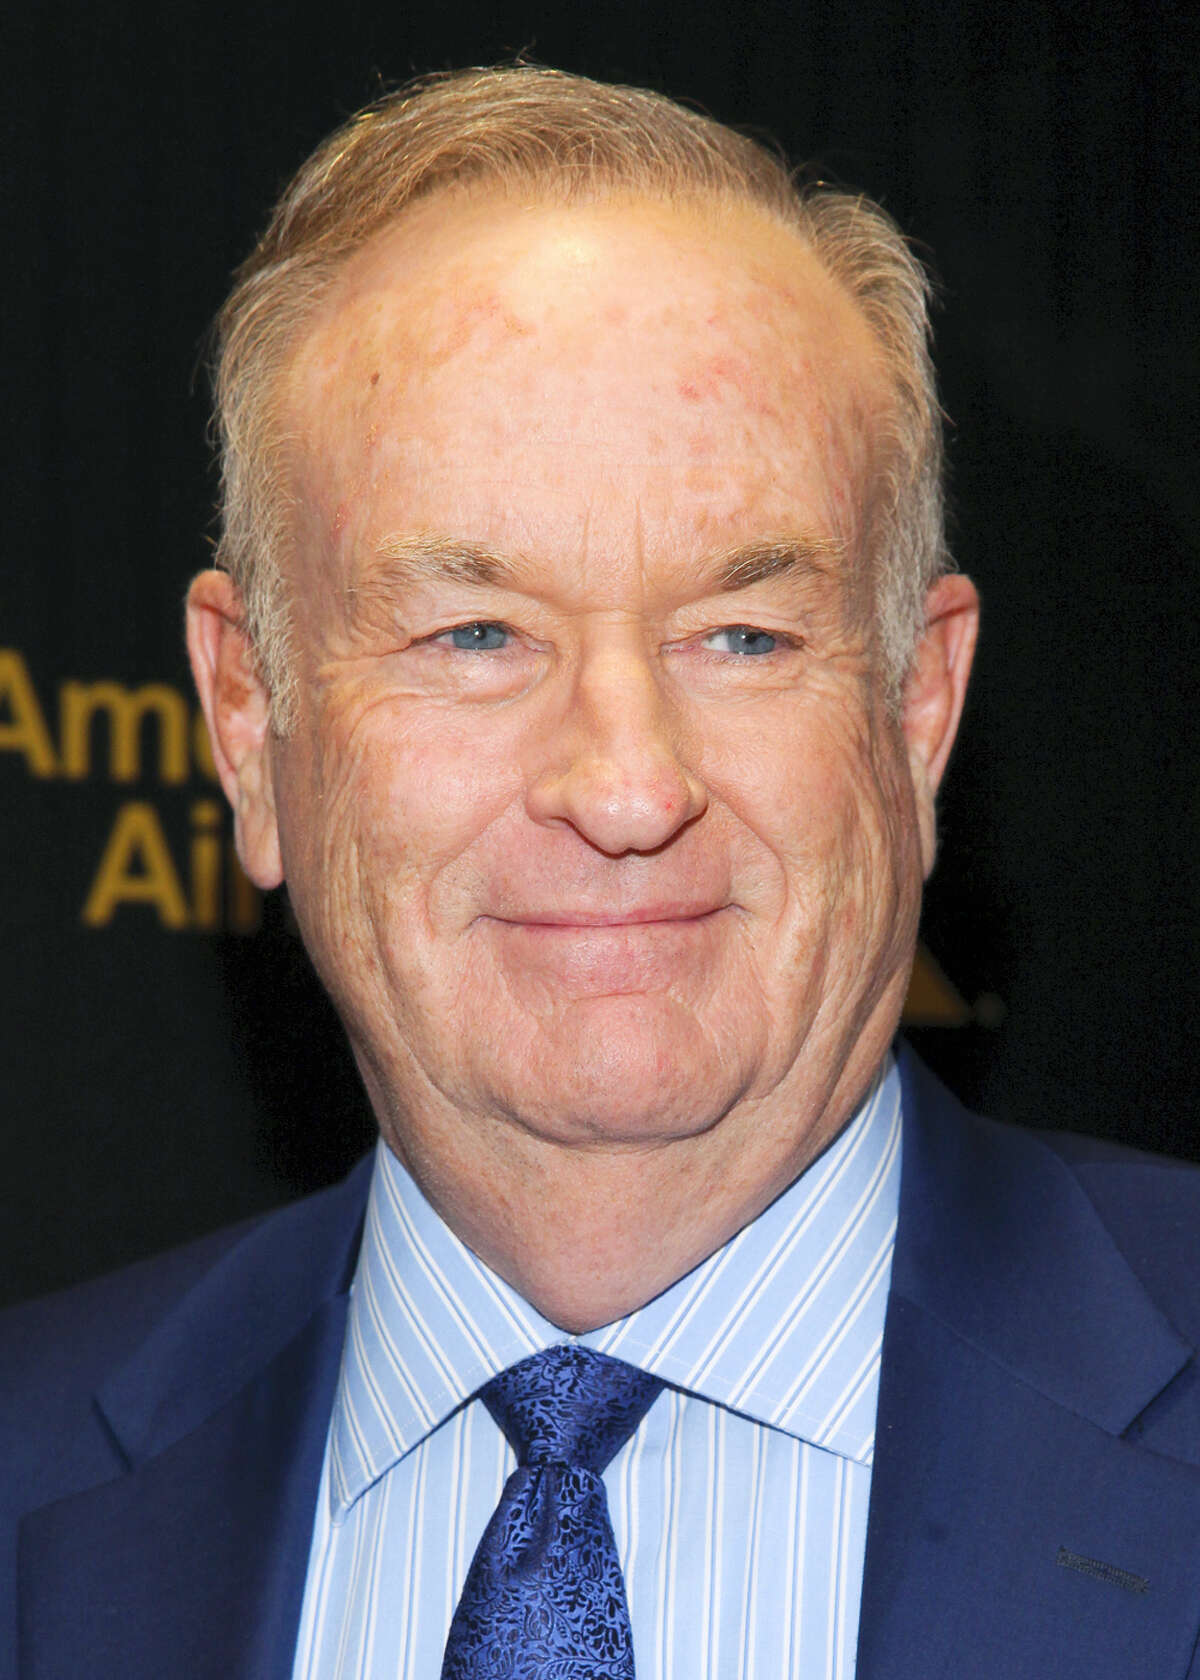 """In this file photo, Bill O'Reilly attends The Hollywood Reporter's """"35 Most Powerful People in Media"""" celebration in New York. 21st Century Fox issued a statement Wednesday that O'Reilly will not return to Fox News."""